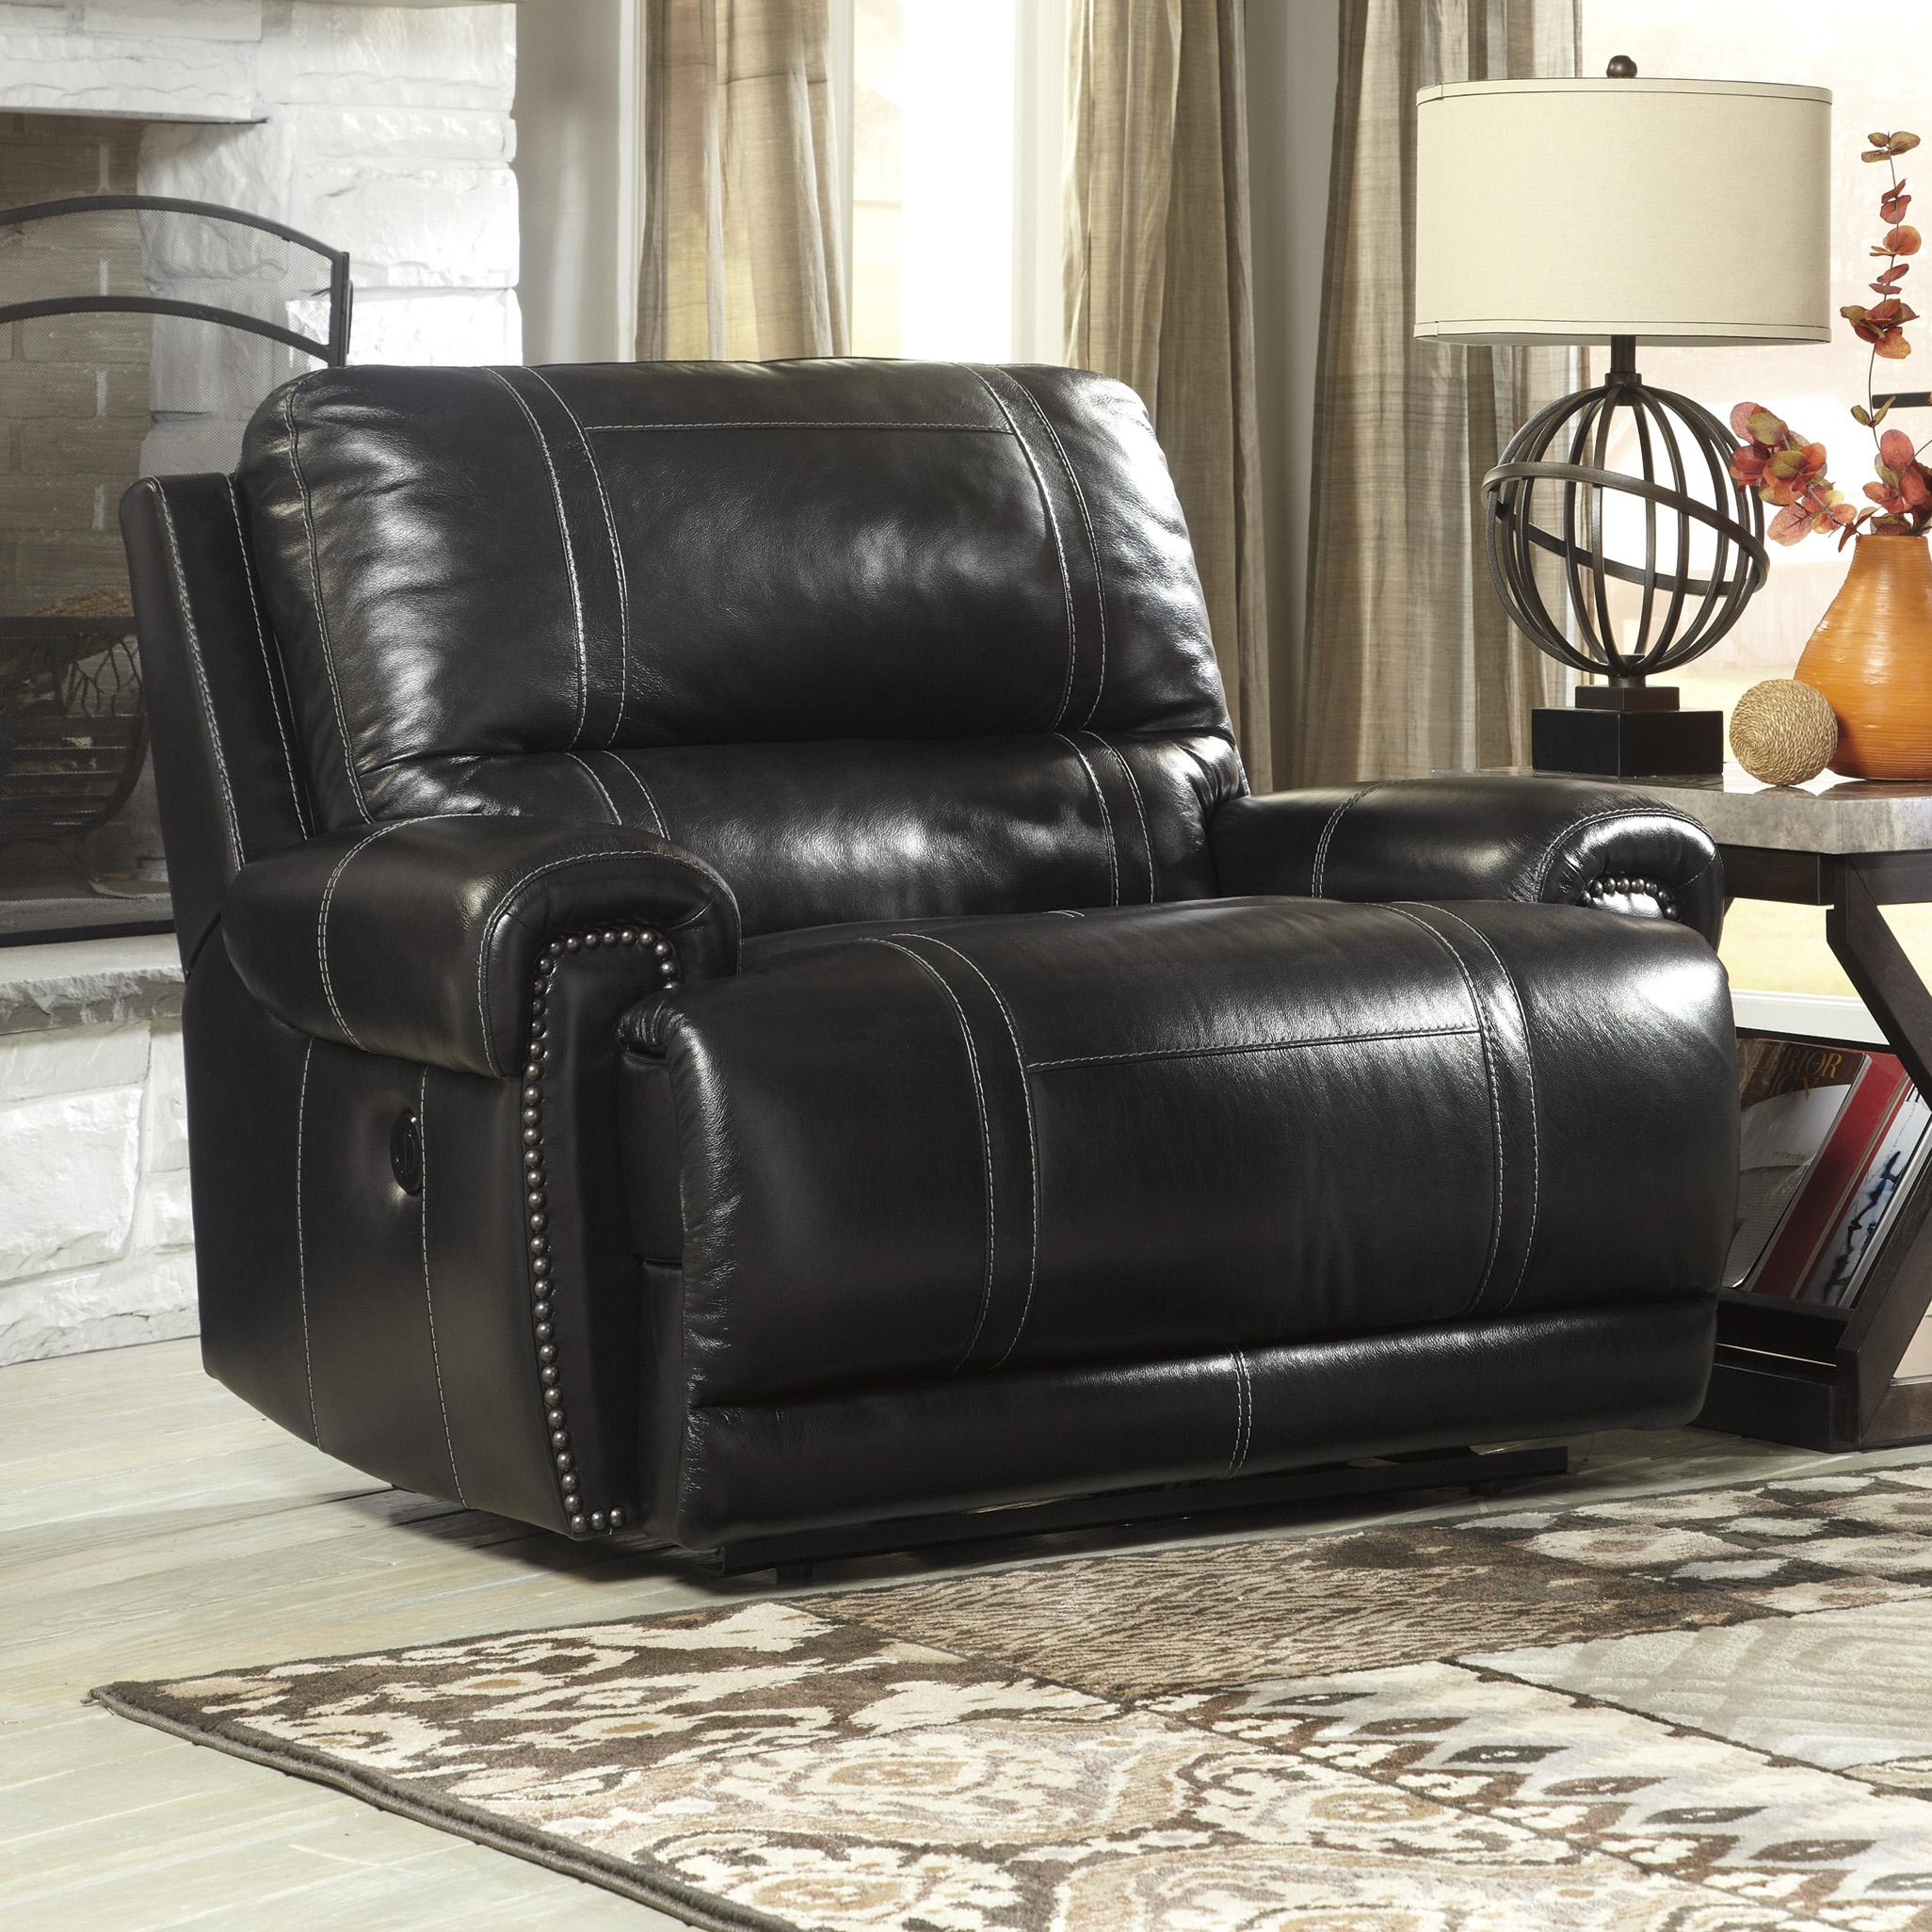 Signature Design by Ashley Paron - Antique Zero Wall Wide Seat Recliner - Item Number: U7590152